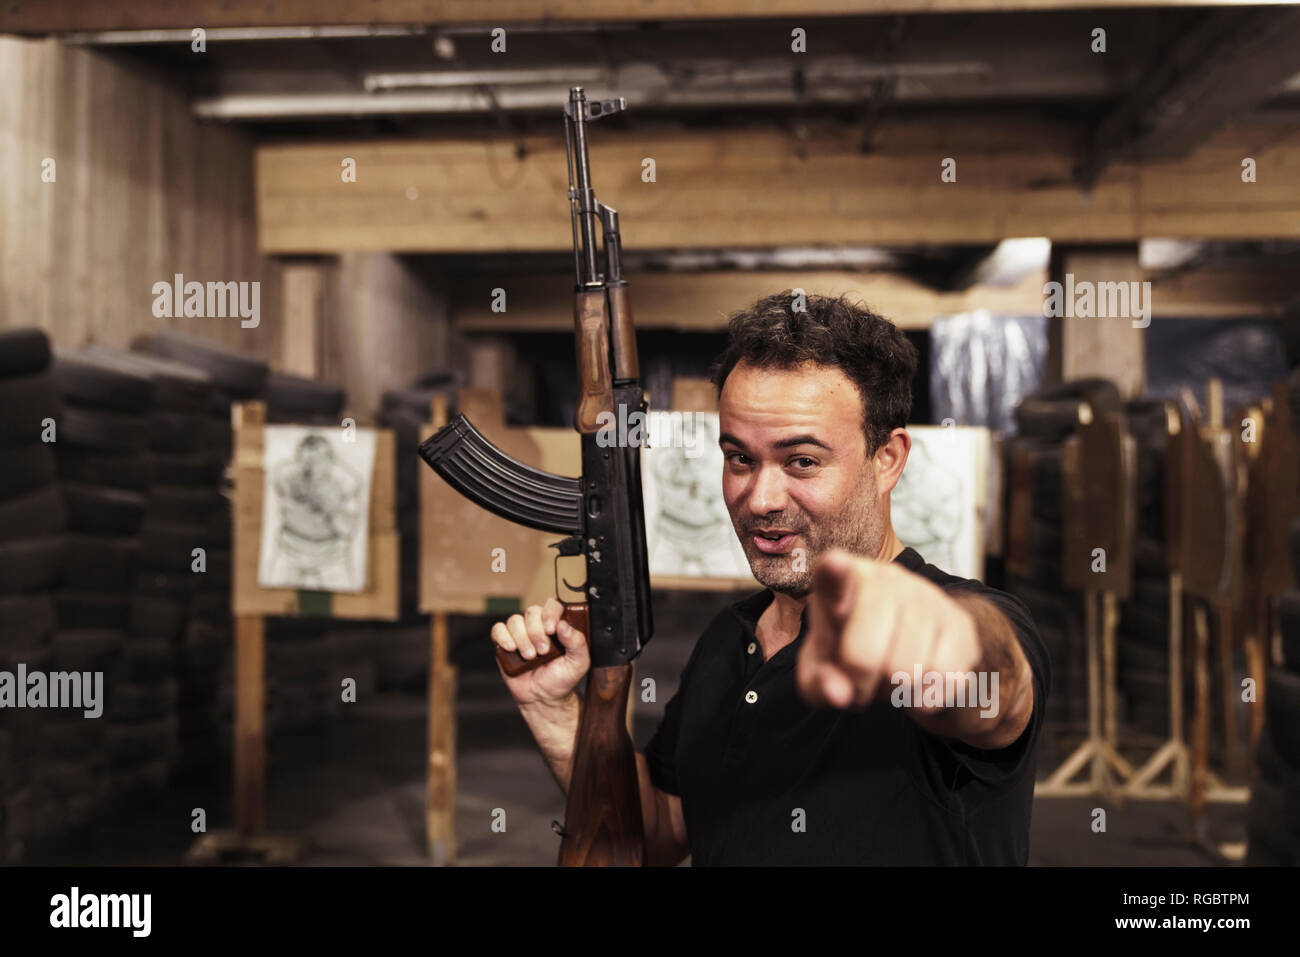 Portrait of man with a rifle pointing his finger in an indoor shooting range - Stock Image